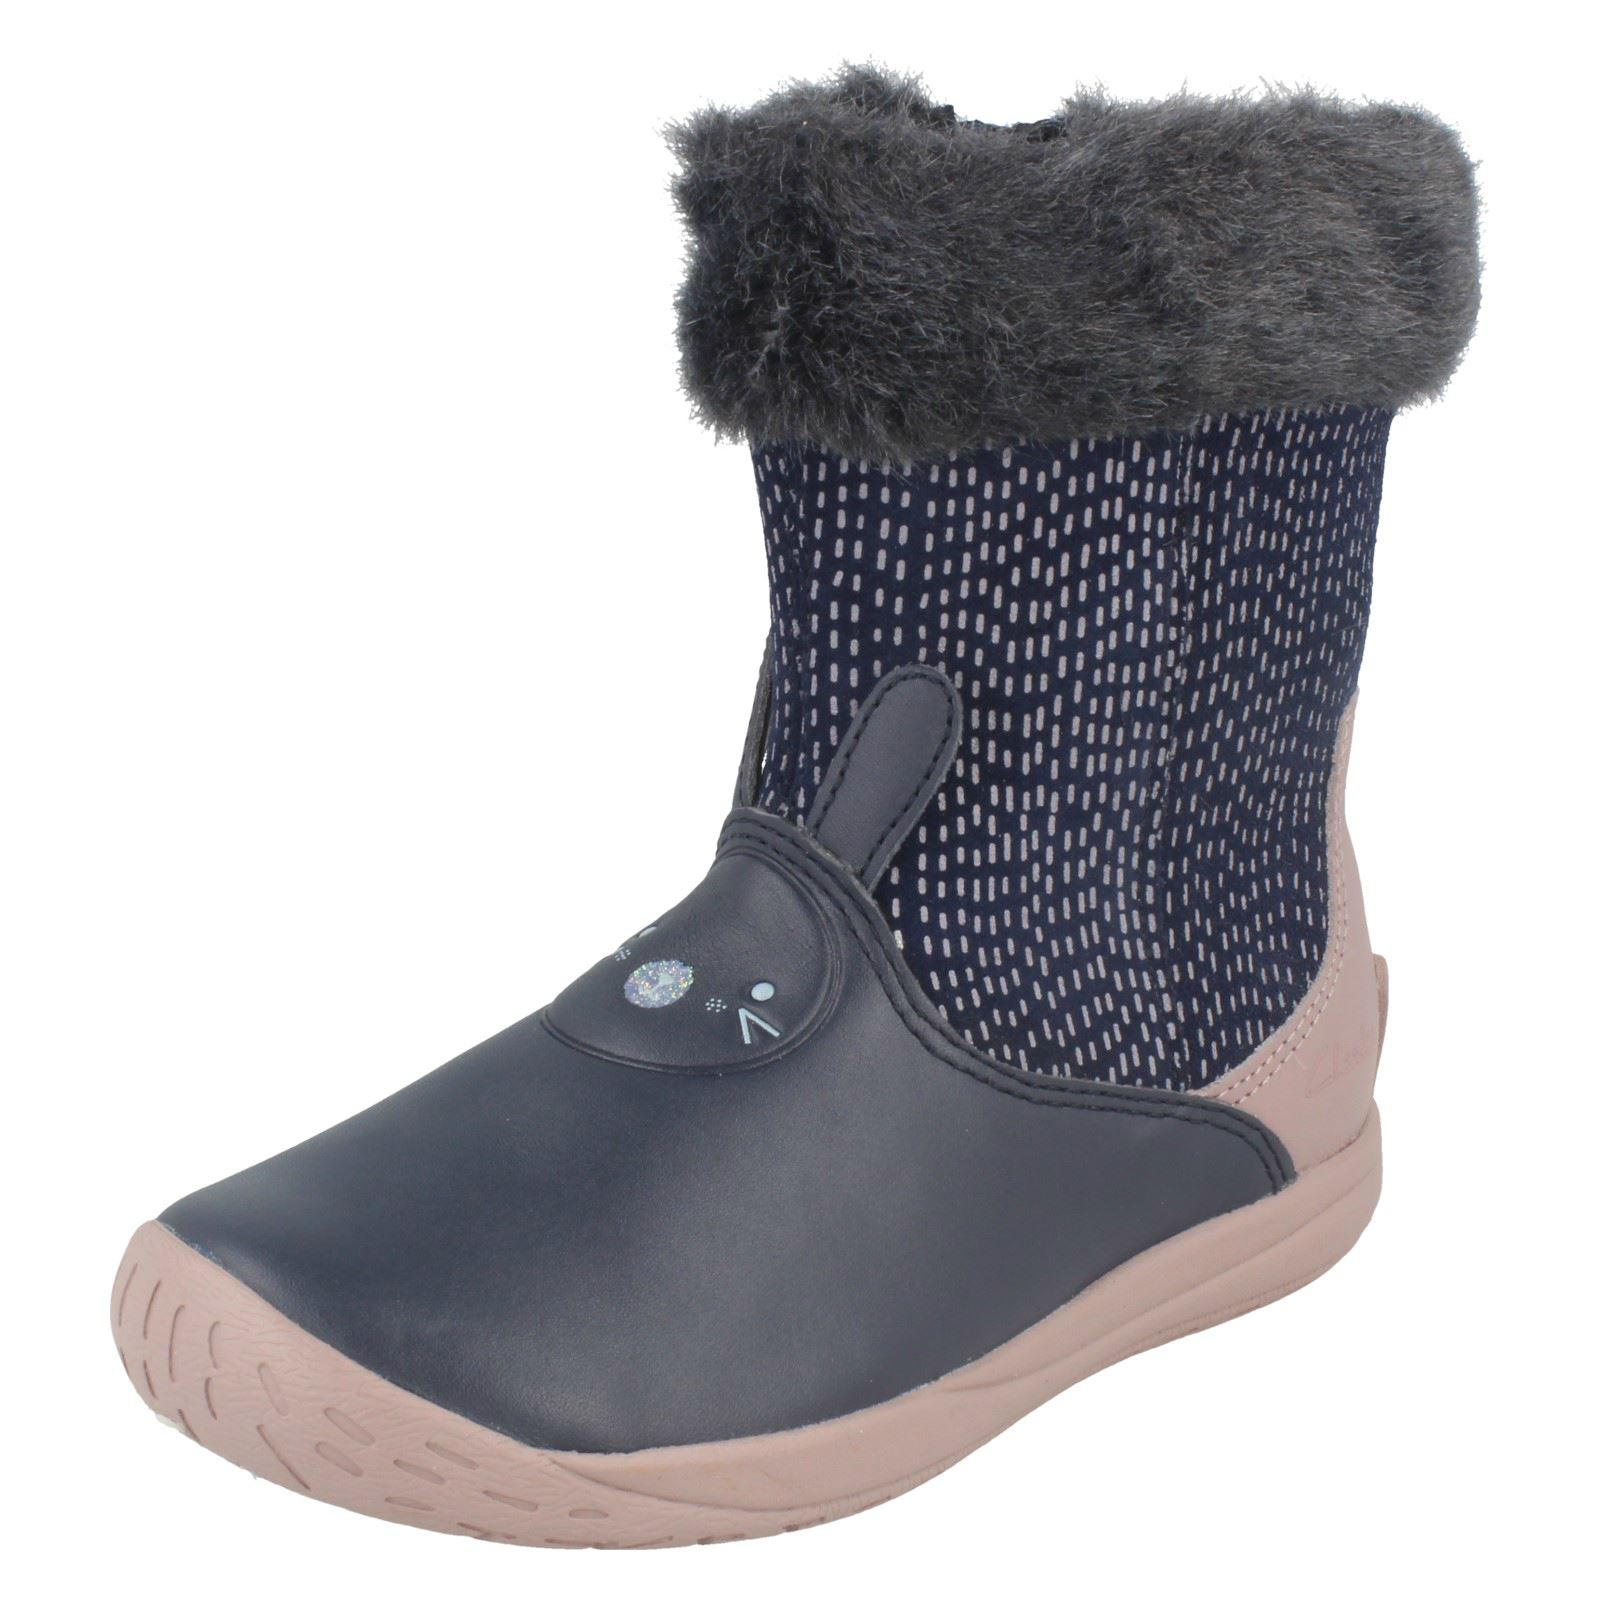 Girls Clarks Boots Puppet Time